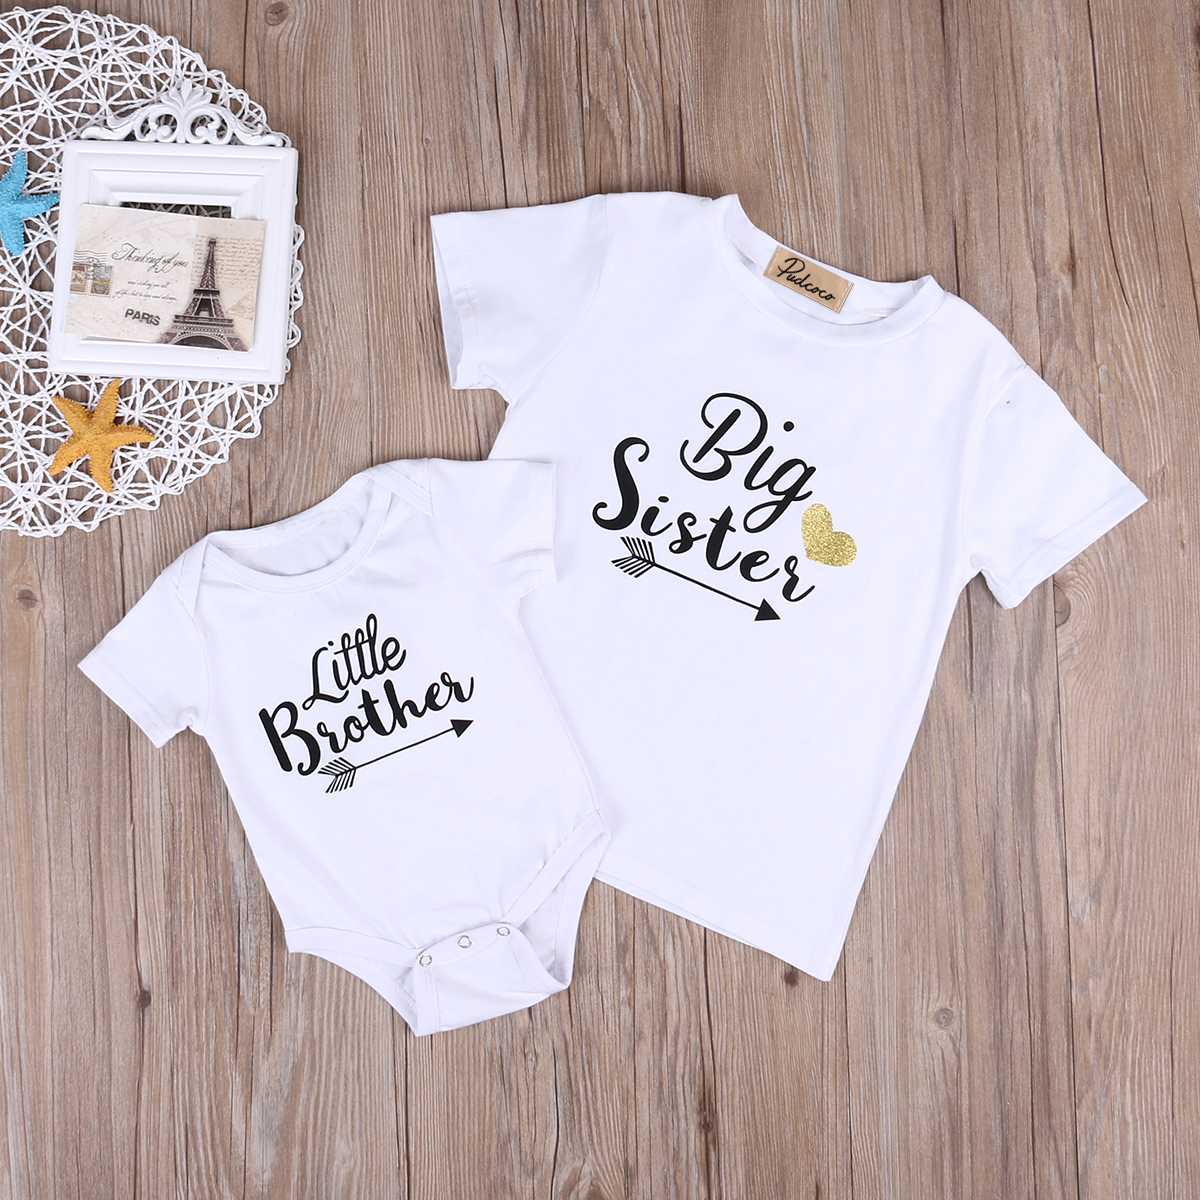 Family Brother Sister Matching Clothing Toddler Kids Baby Boys Bro Bodysuit Girls Sister T-shirt Tops Outfits Clothing